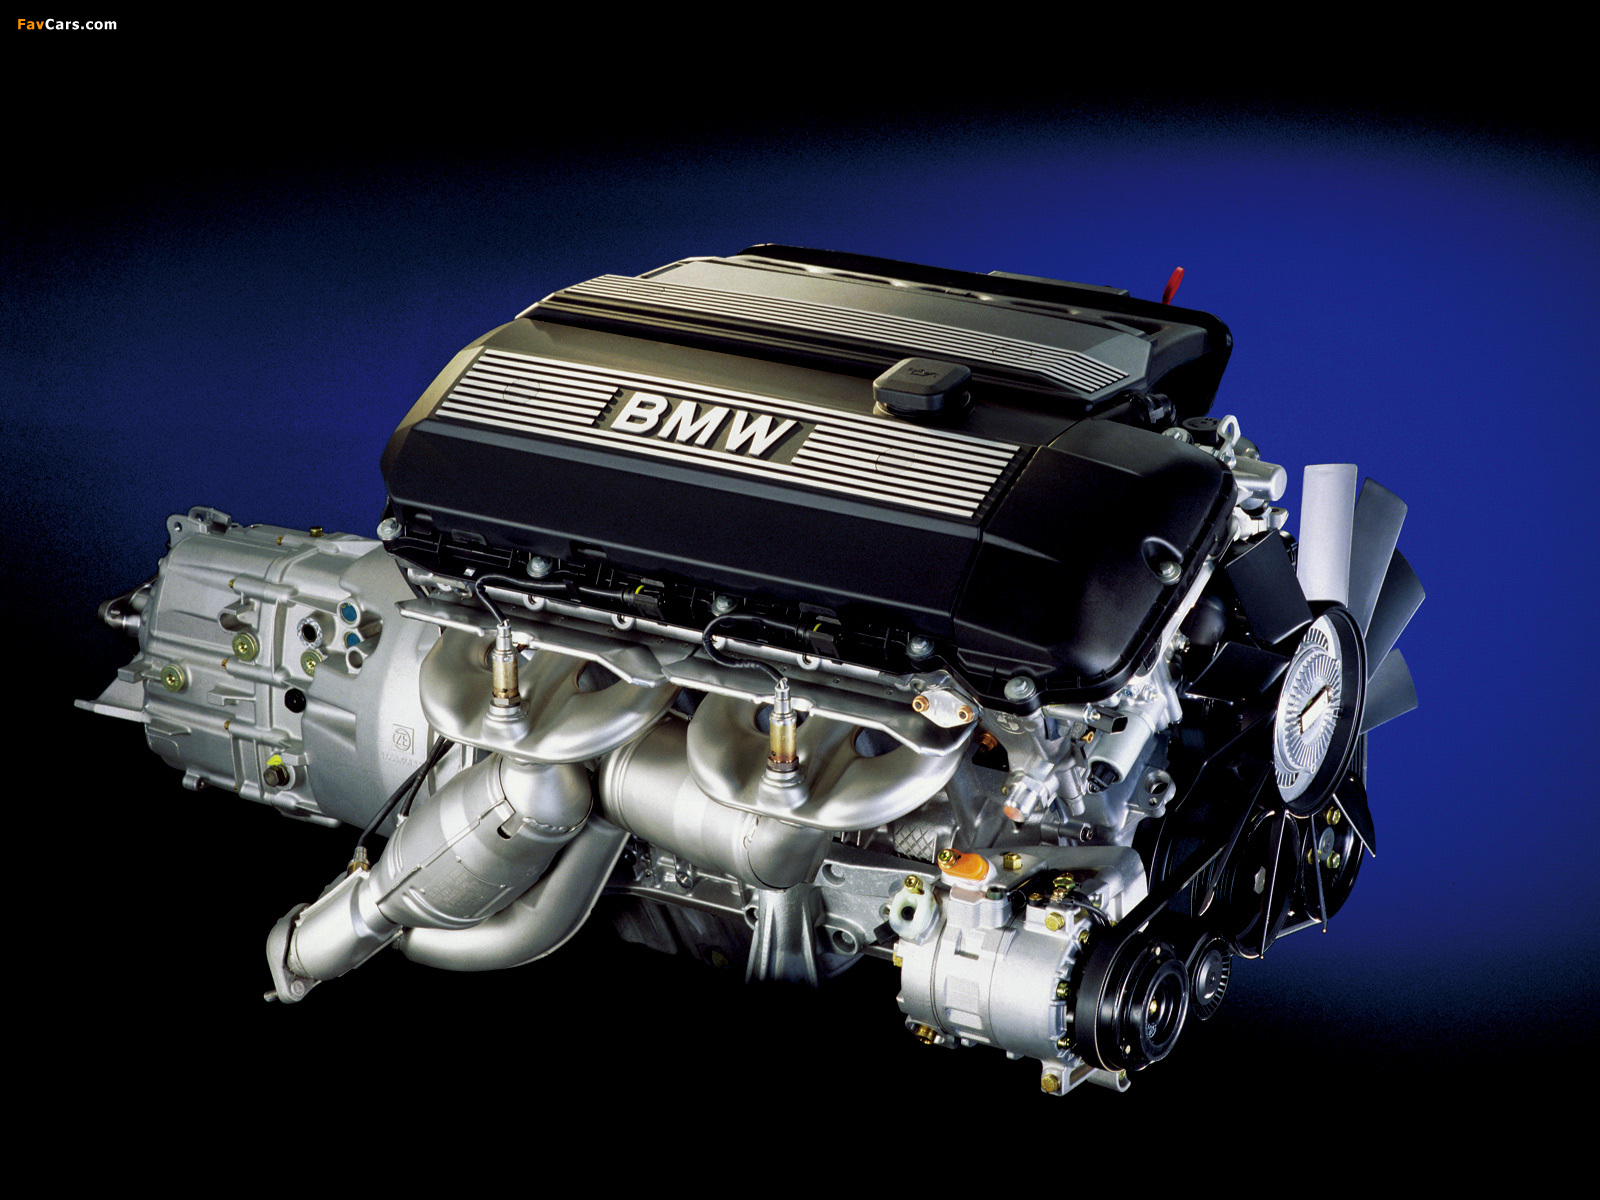 pictures of engines bmw m54 b30 306s3 1600x1200. Black Bedroom Furniture Sets. Home Design Ideas